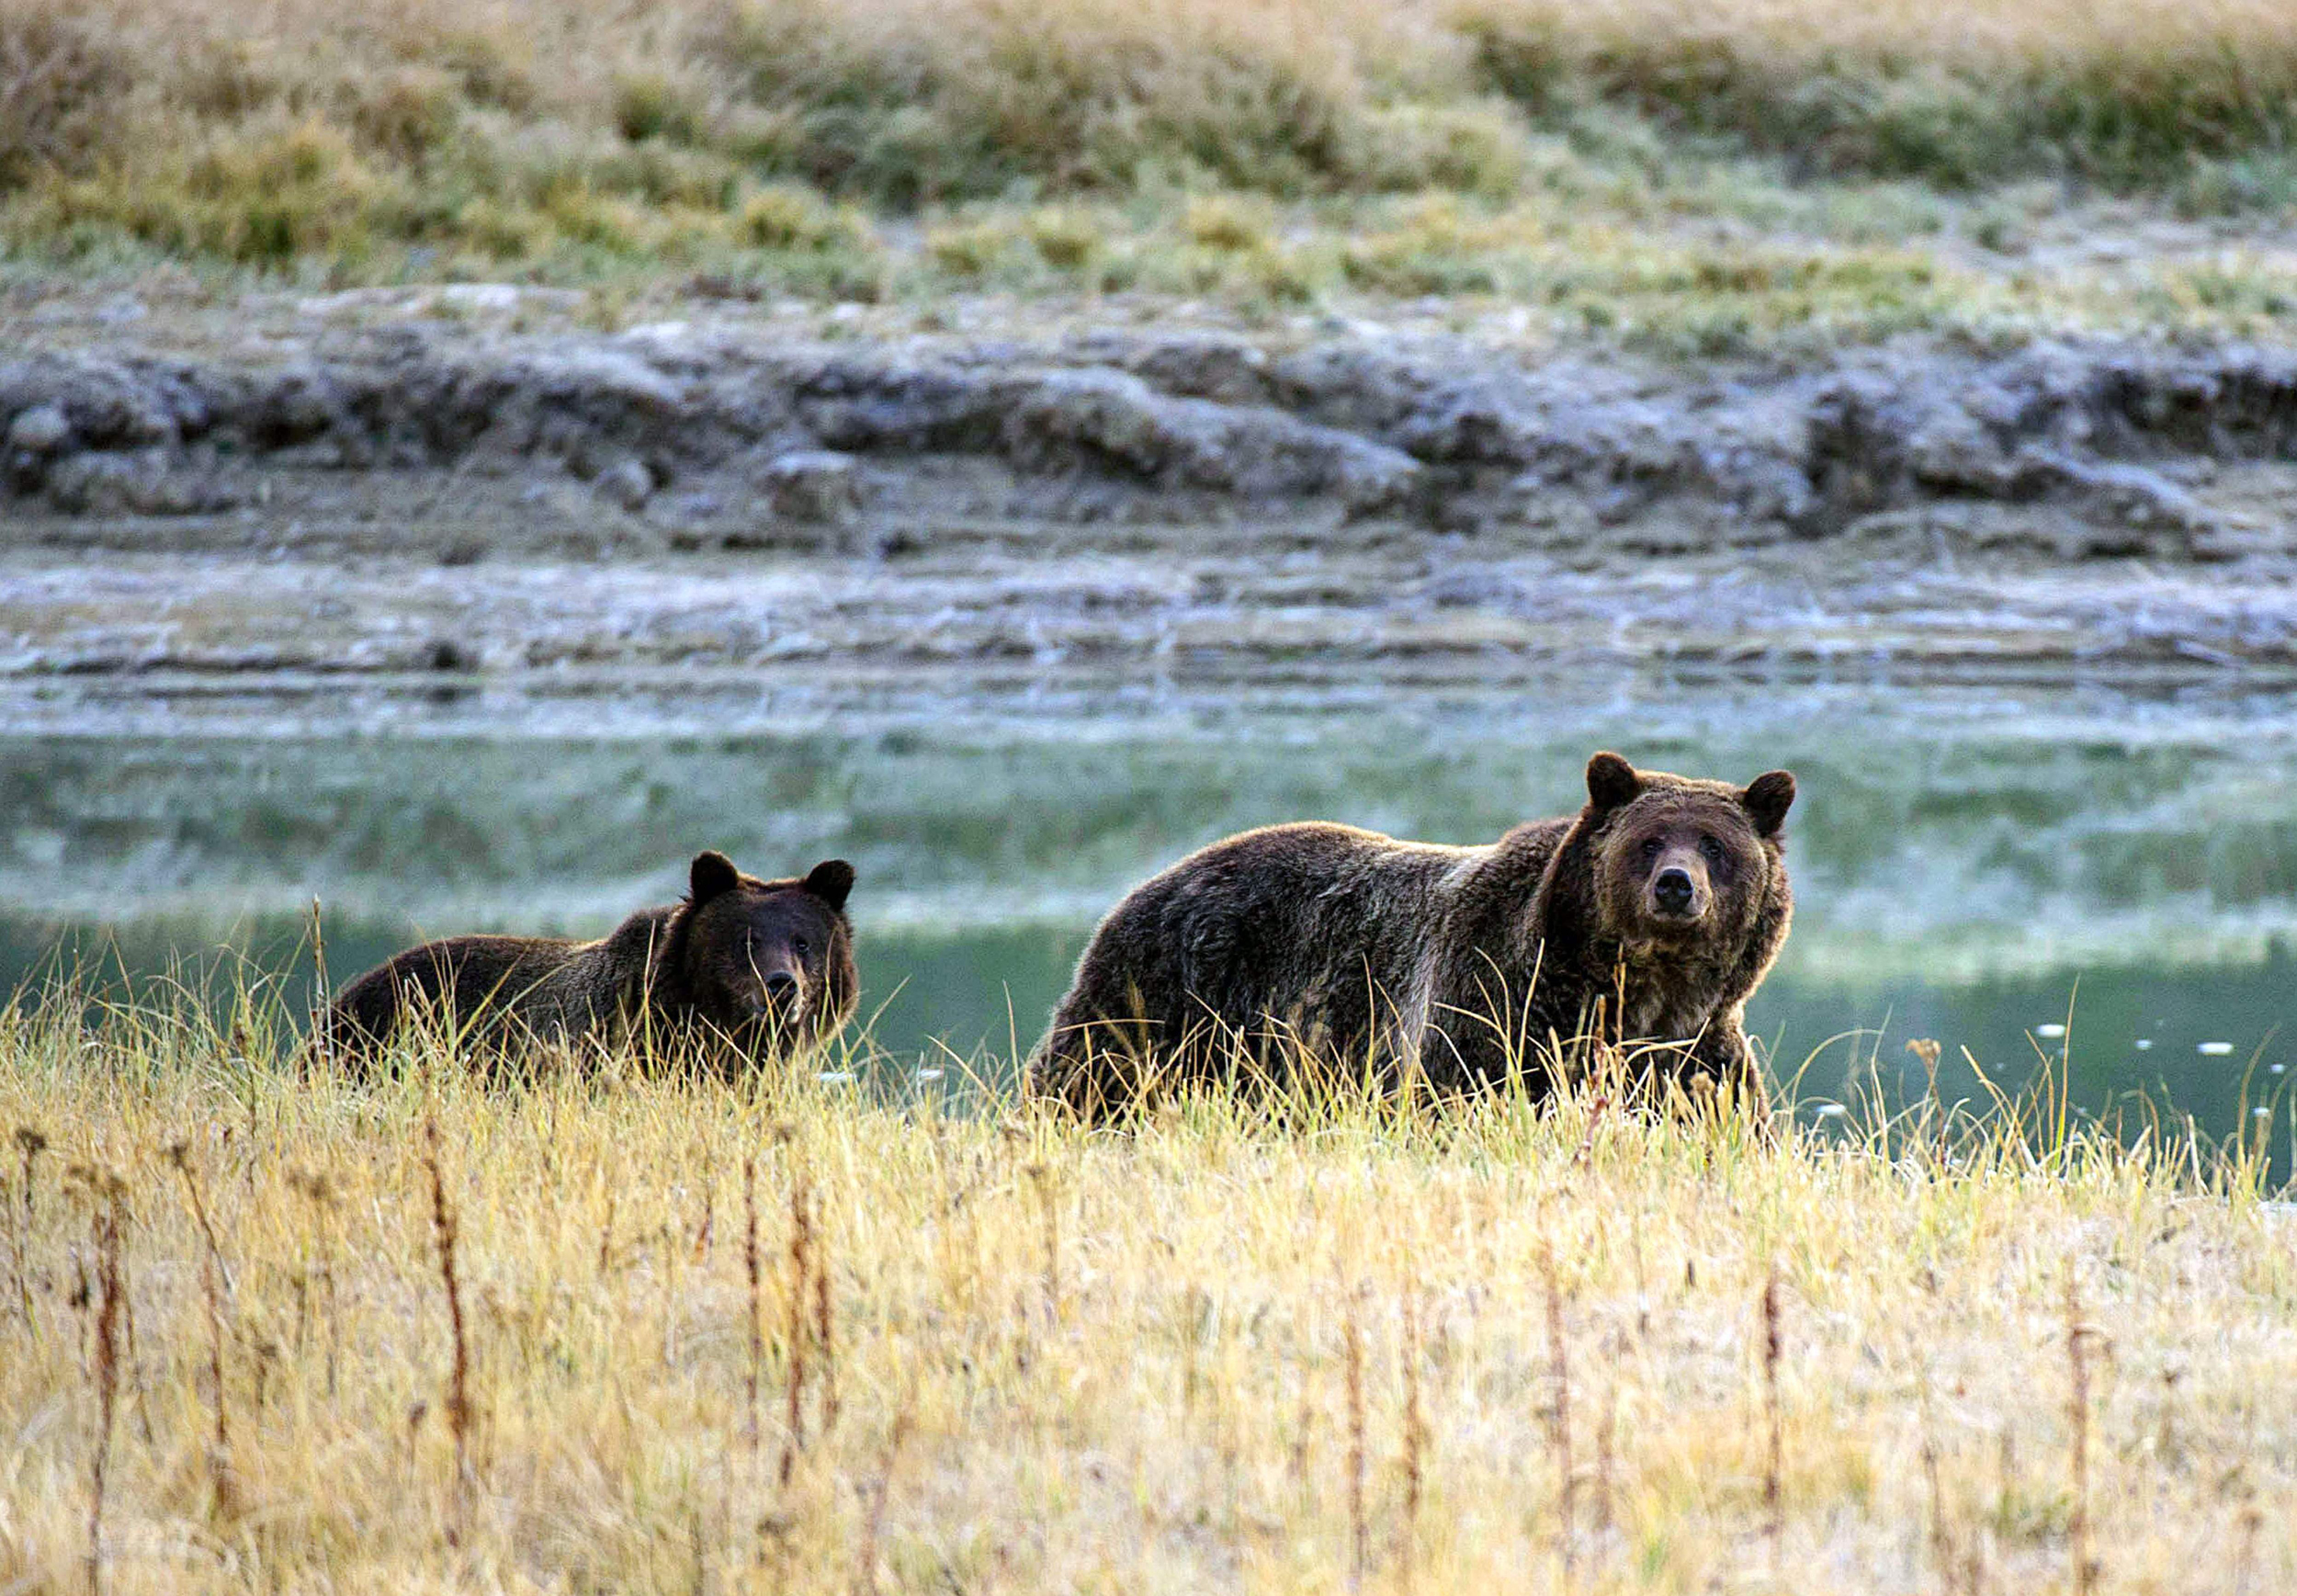 Judge halts first grizzly bear hunts in more than 40 years in Wyoming, Idaho